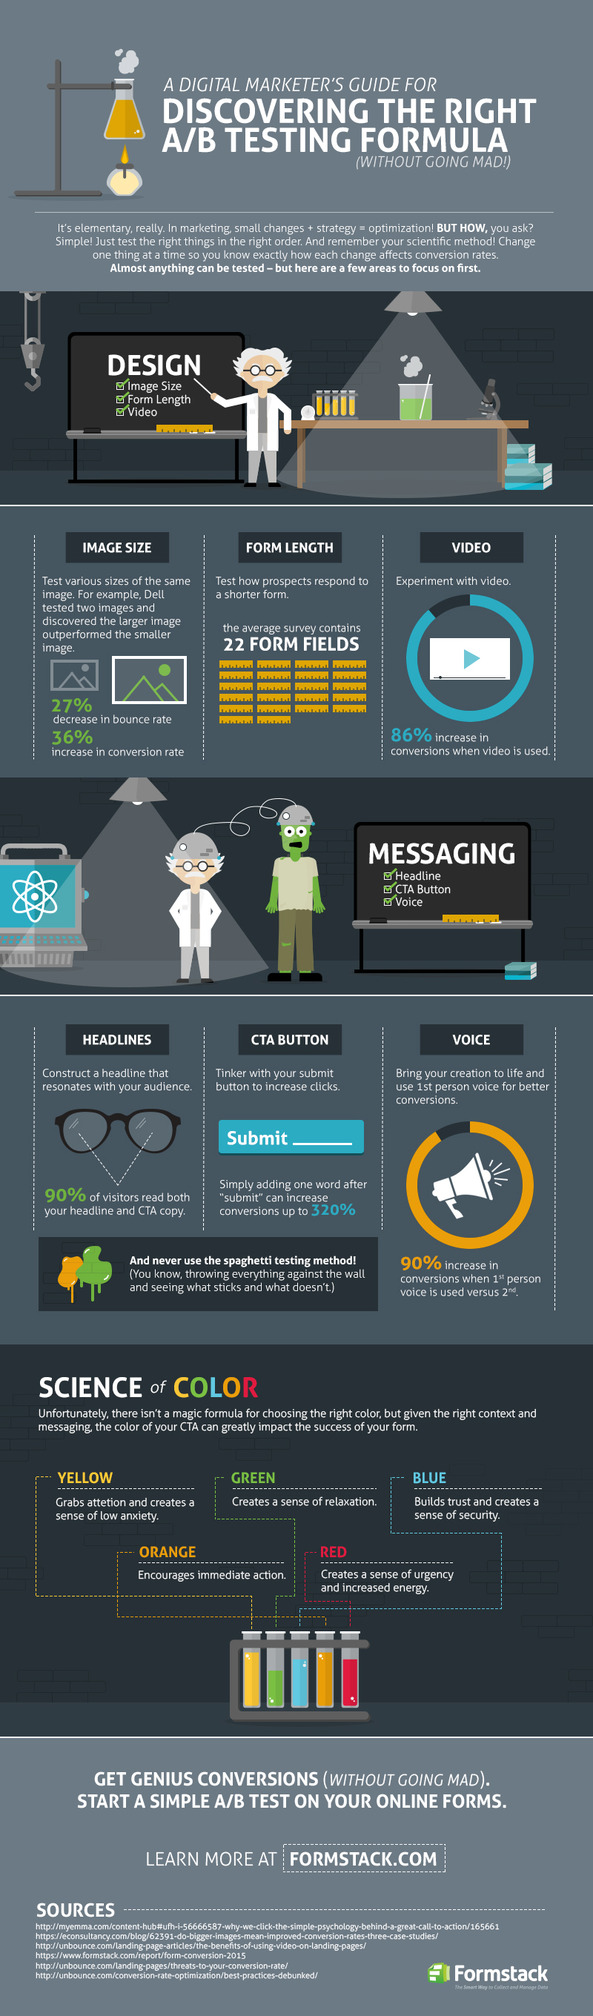 So, What's the 'X-Factor' in the A/B Testing Formula? (Infographic)